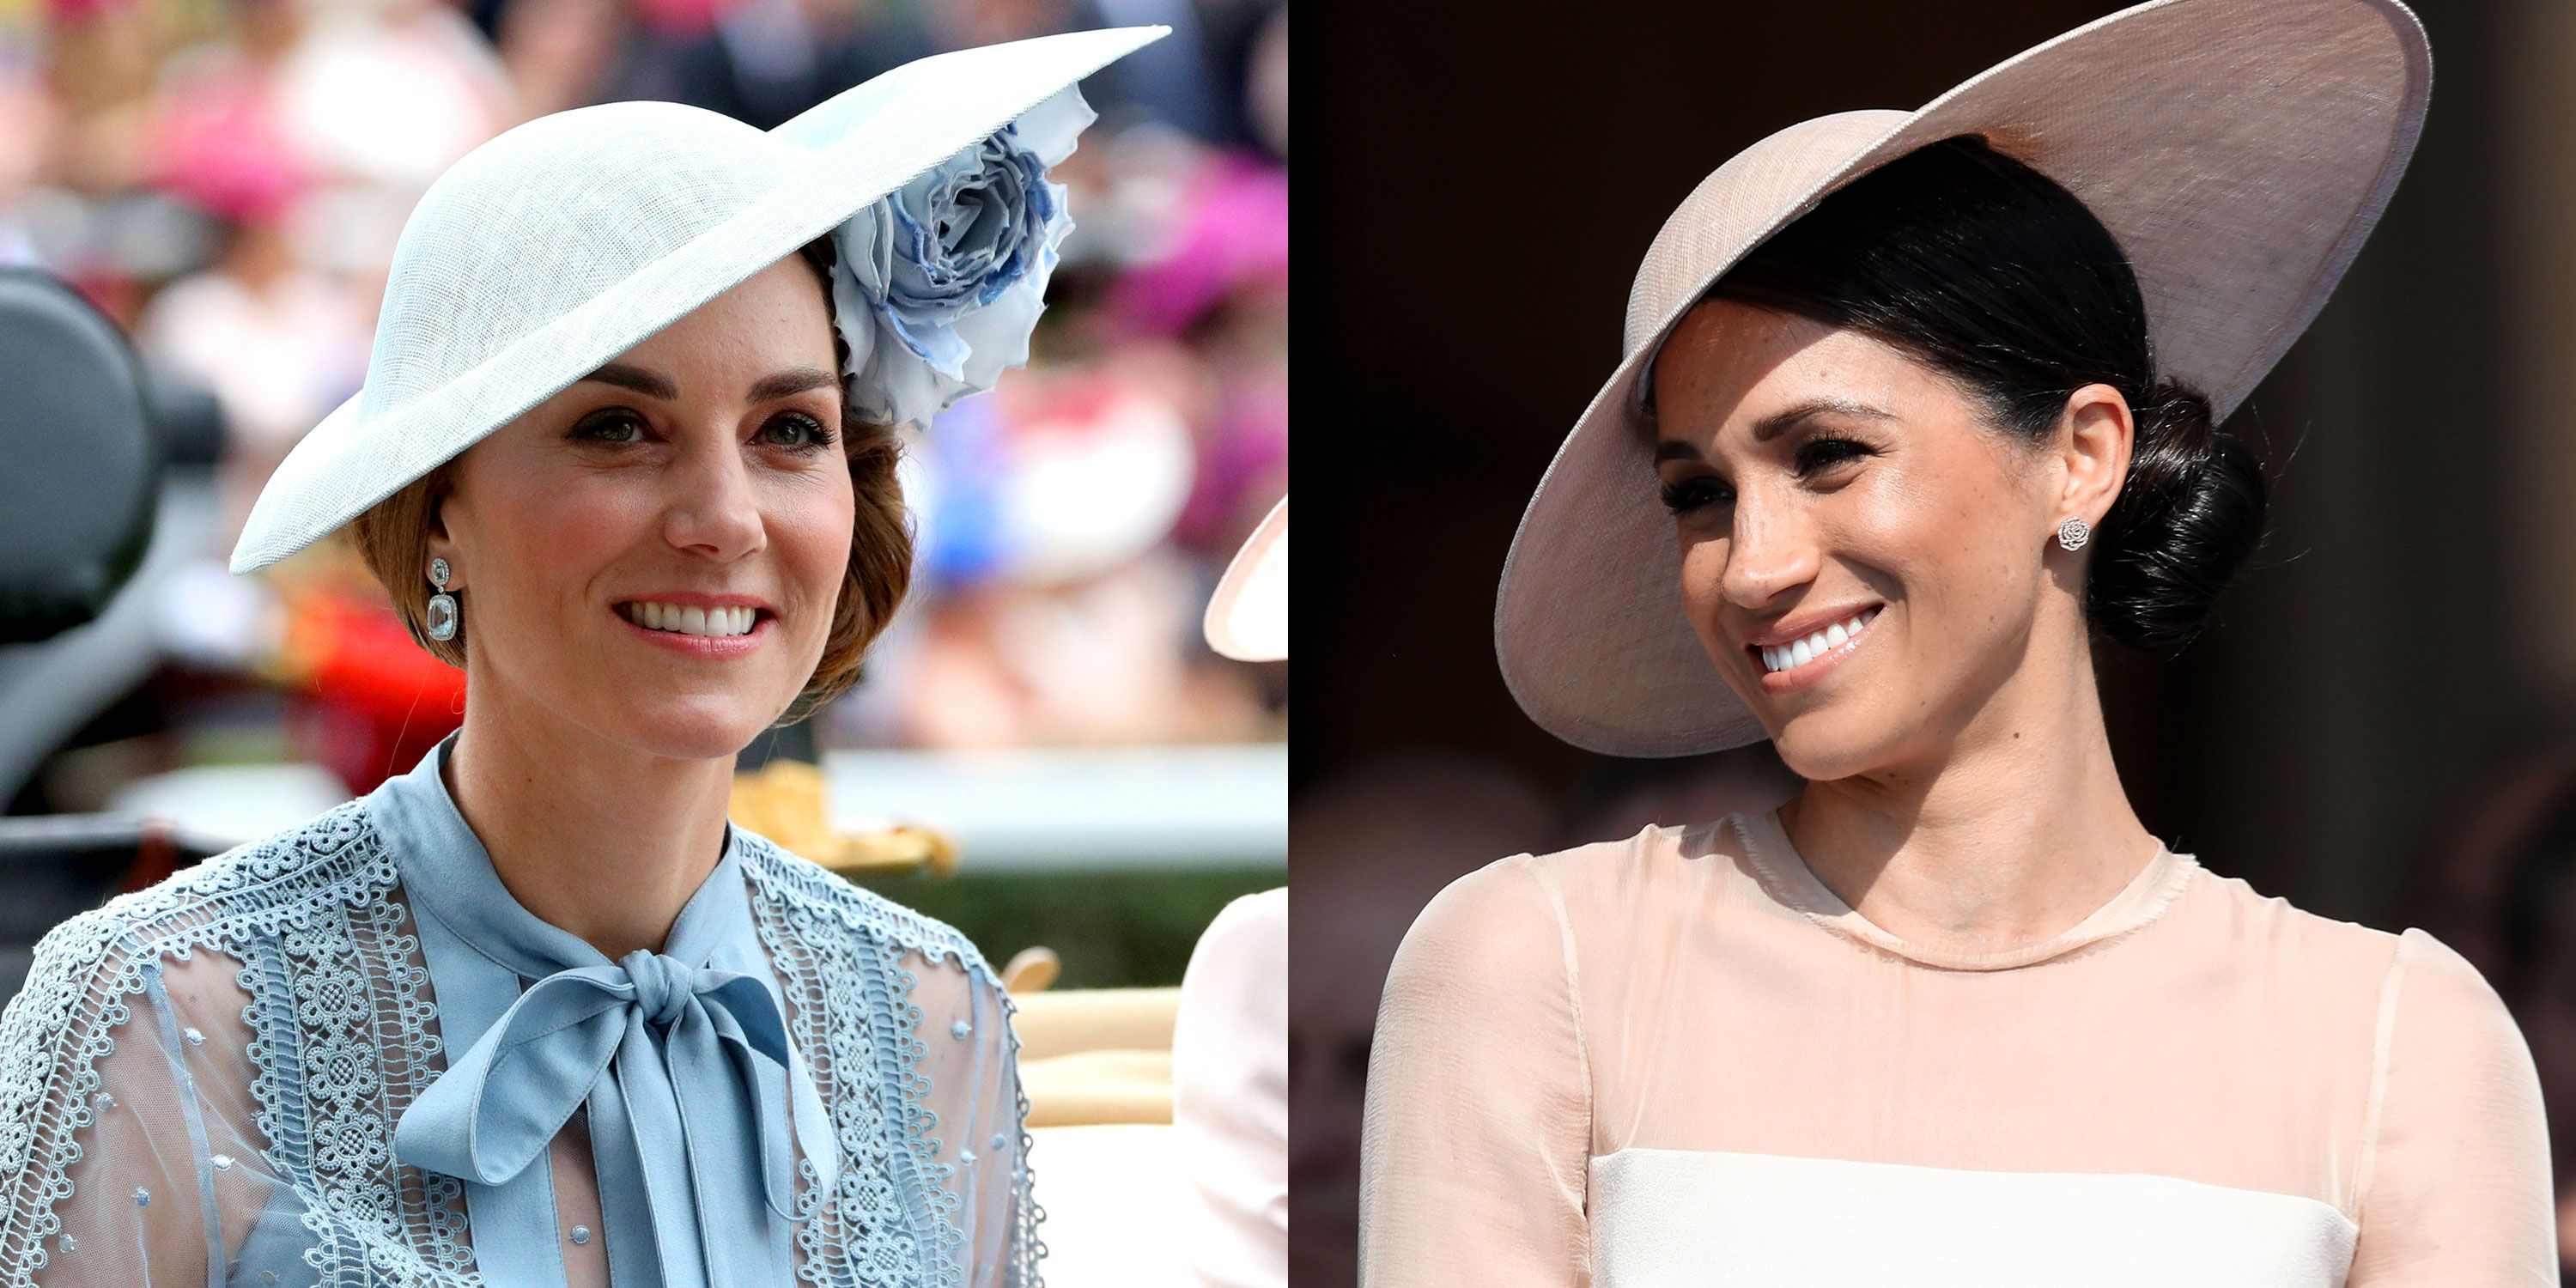 Kate Middleton Wore the Same Hat as Meghan Markle at Royal Ascot 2019